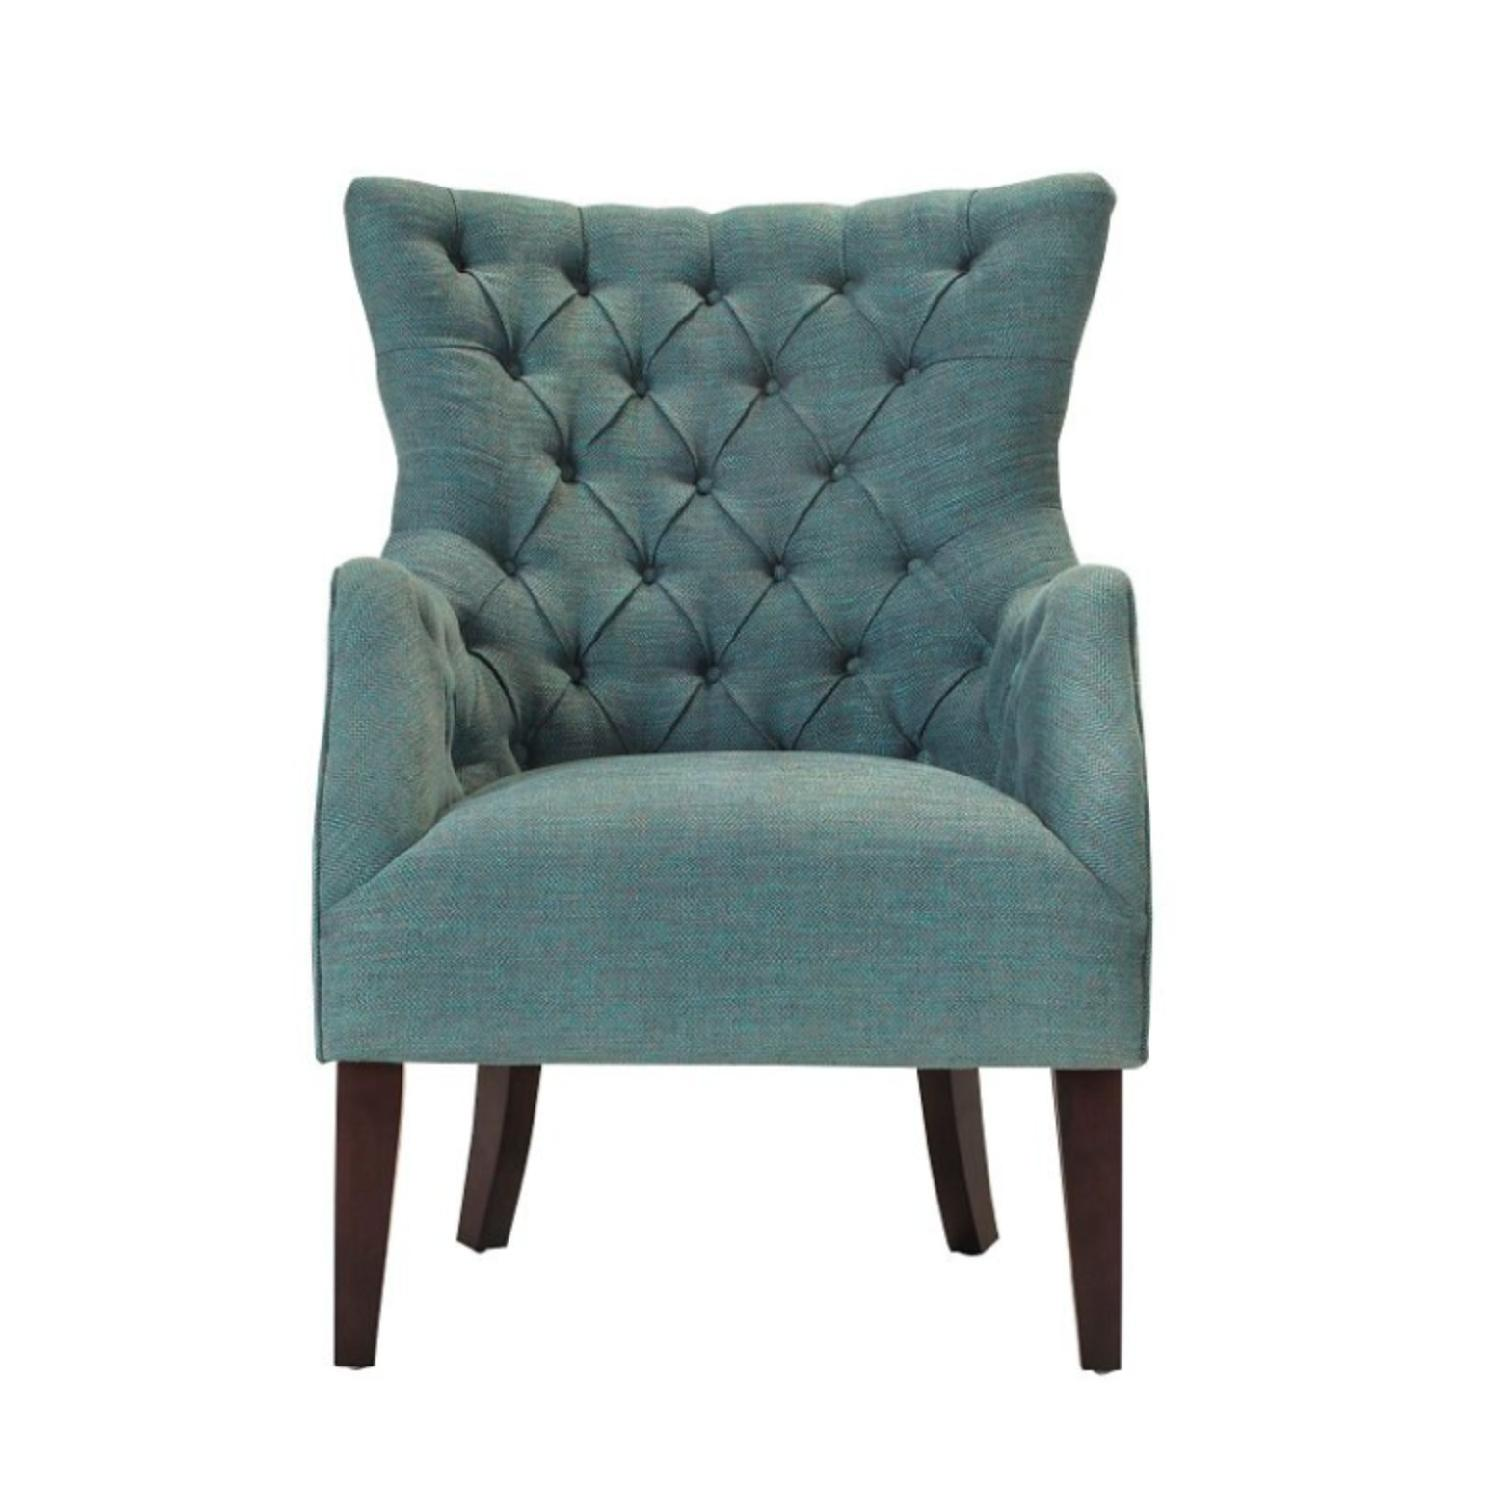 Raymour & Flanigan Angora Chenille Accent Chair